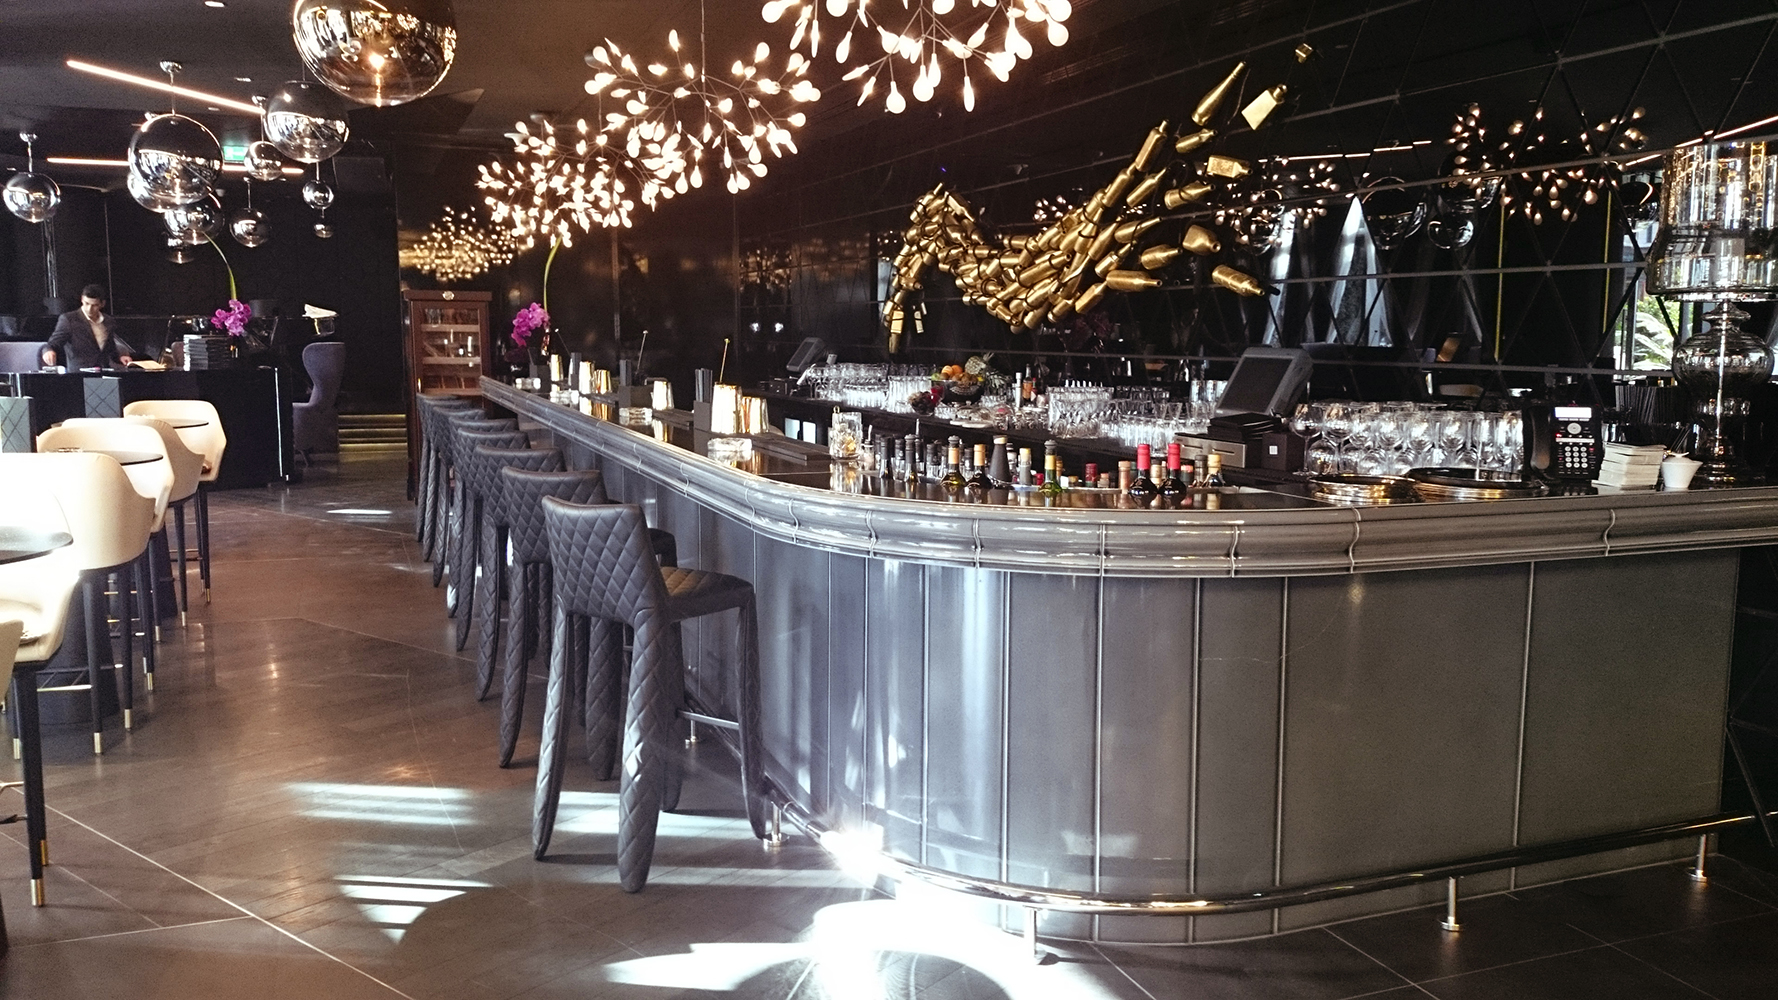 Fabuleux Buffets and reception counters for bars & restaurants - Pyrolave CR39